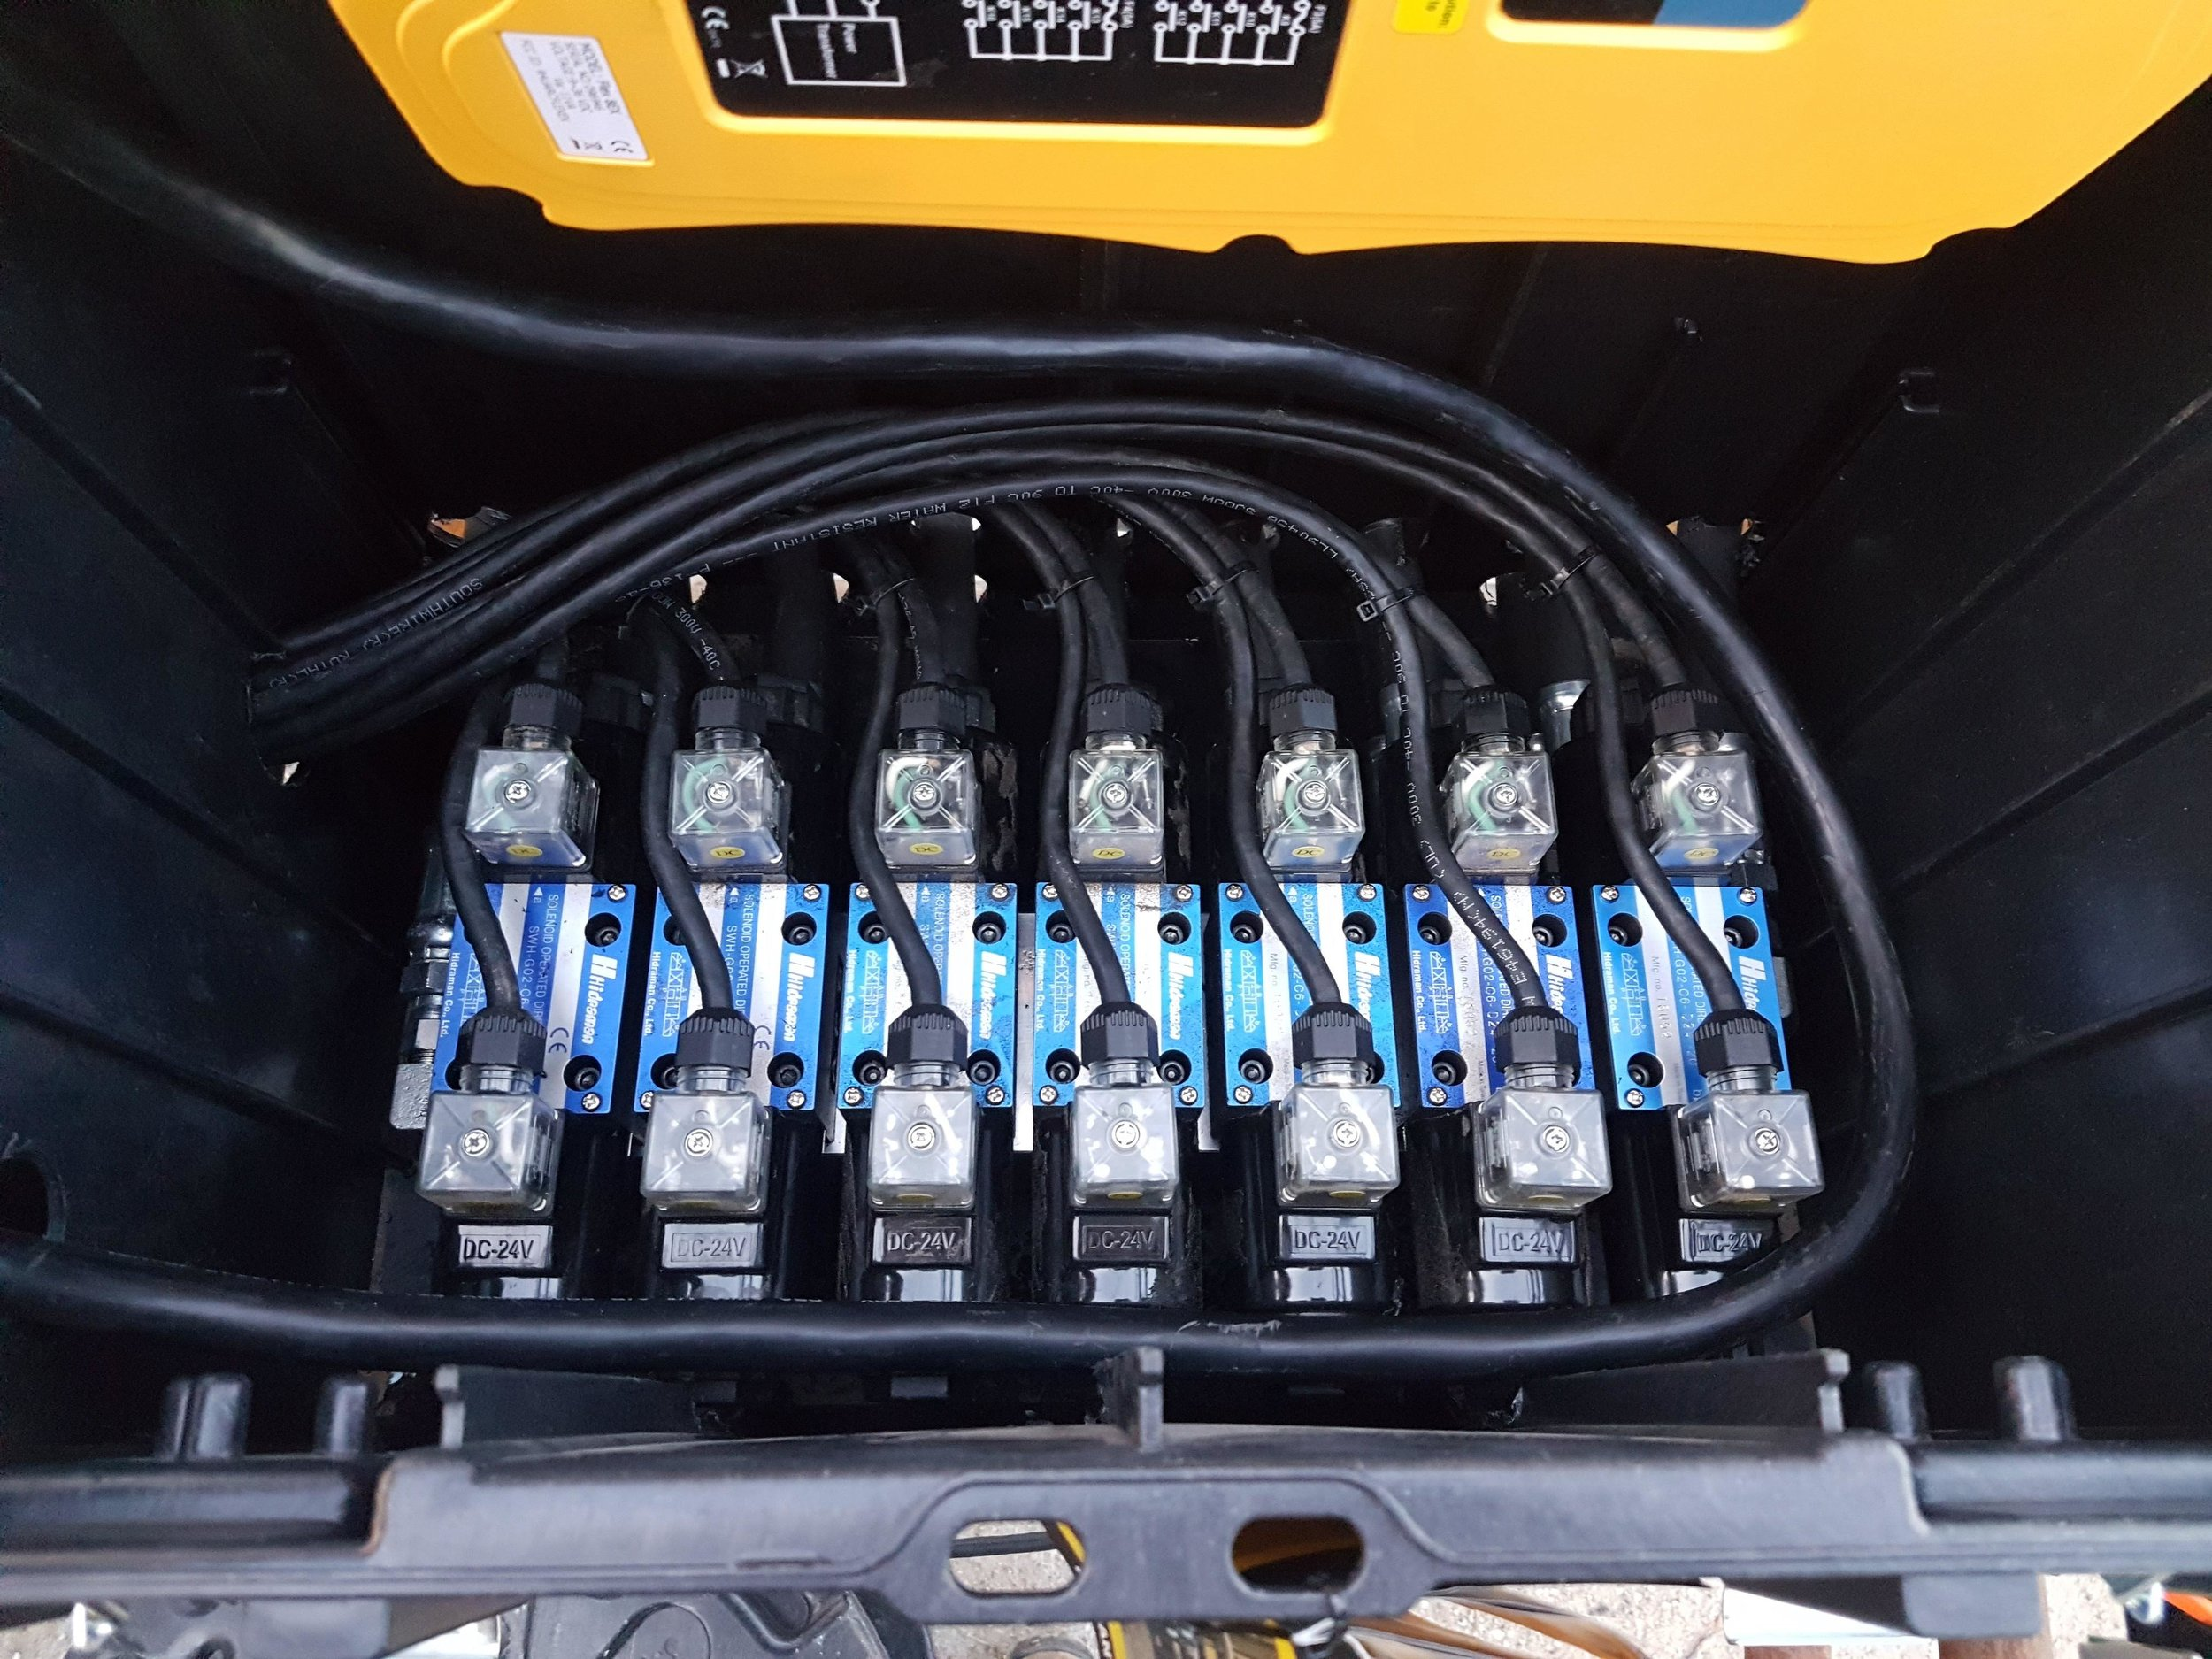 A bank of 7 valves mounted on a single manifold. The valves are inside a large toolbox to protect them from the weather.